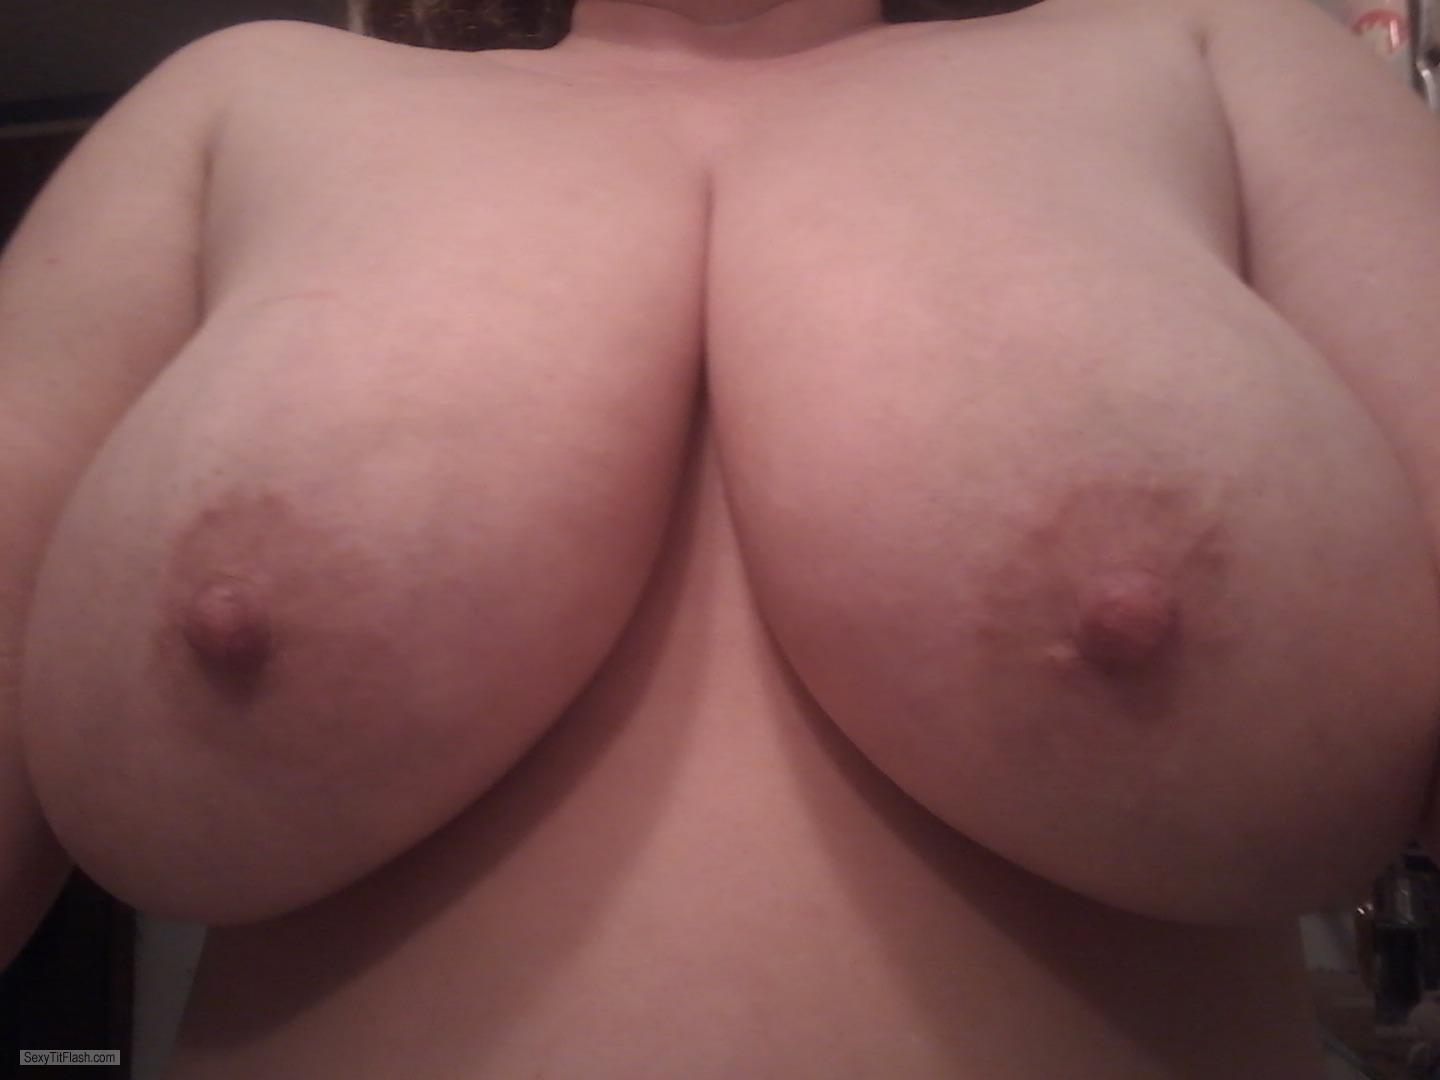 Very big Tits Of My Wife Selfie by DDD's Hanging....